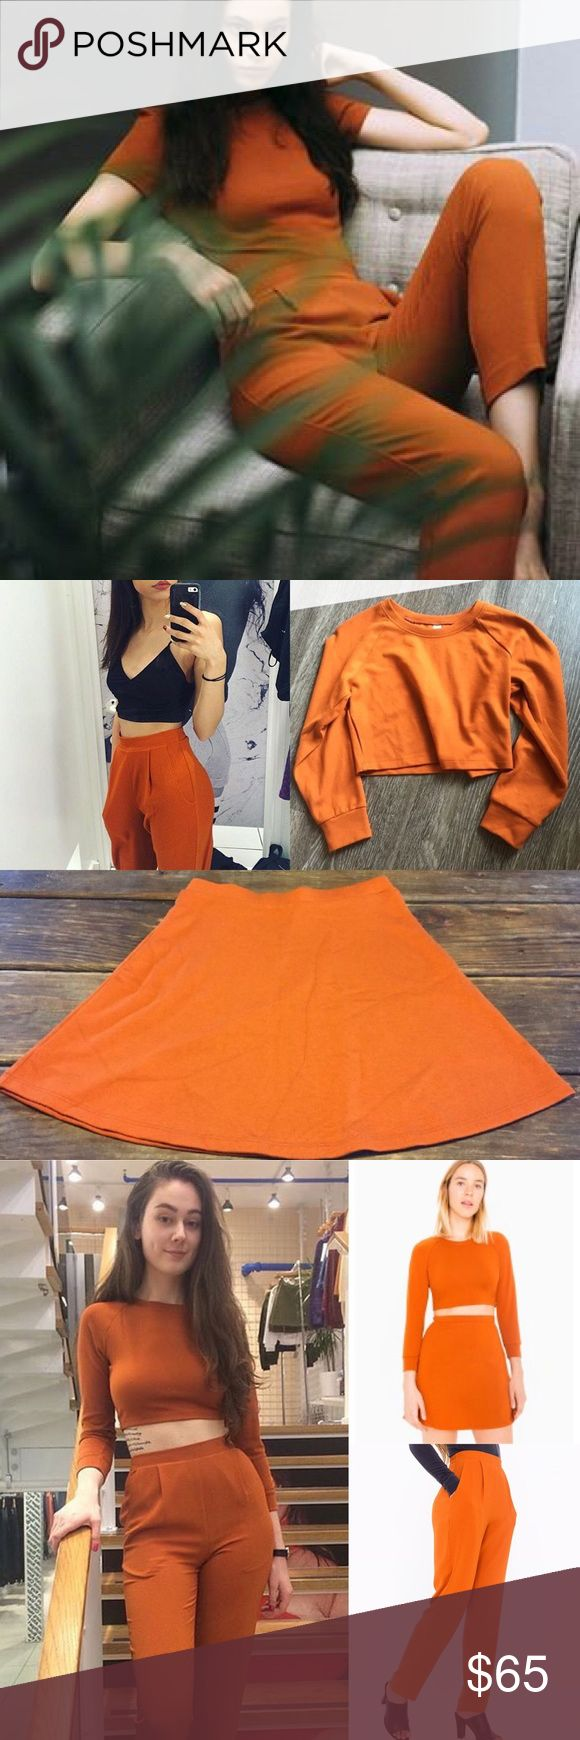 AA - Umber Ensembles!  Cropped Sweater, Crepe Pants and Hyperion Skirt. Still debating on whether or not I should sell. American Apparel Other